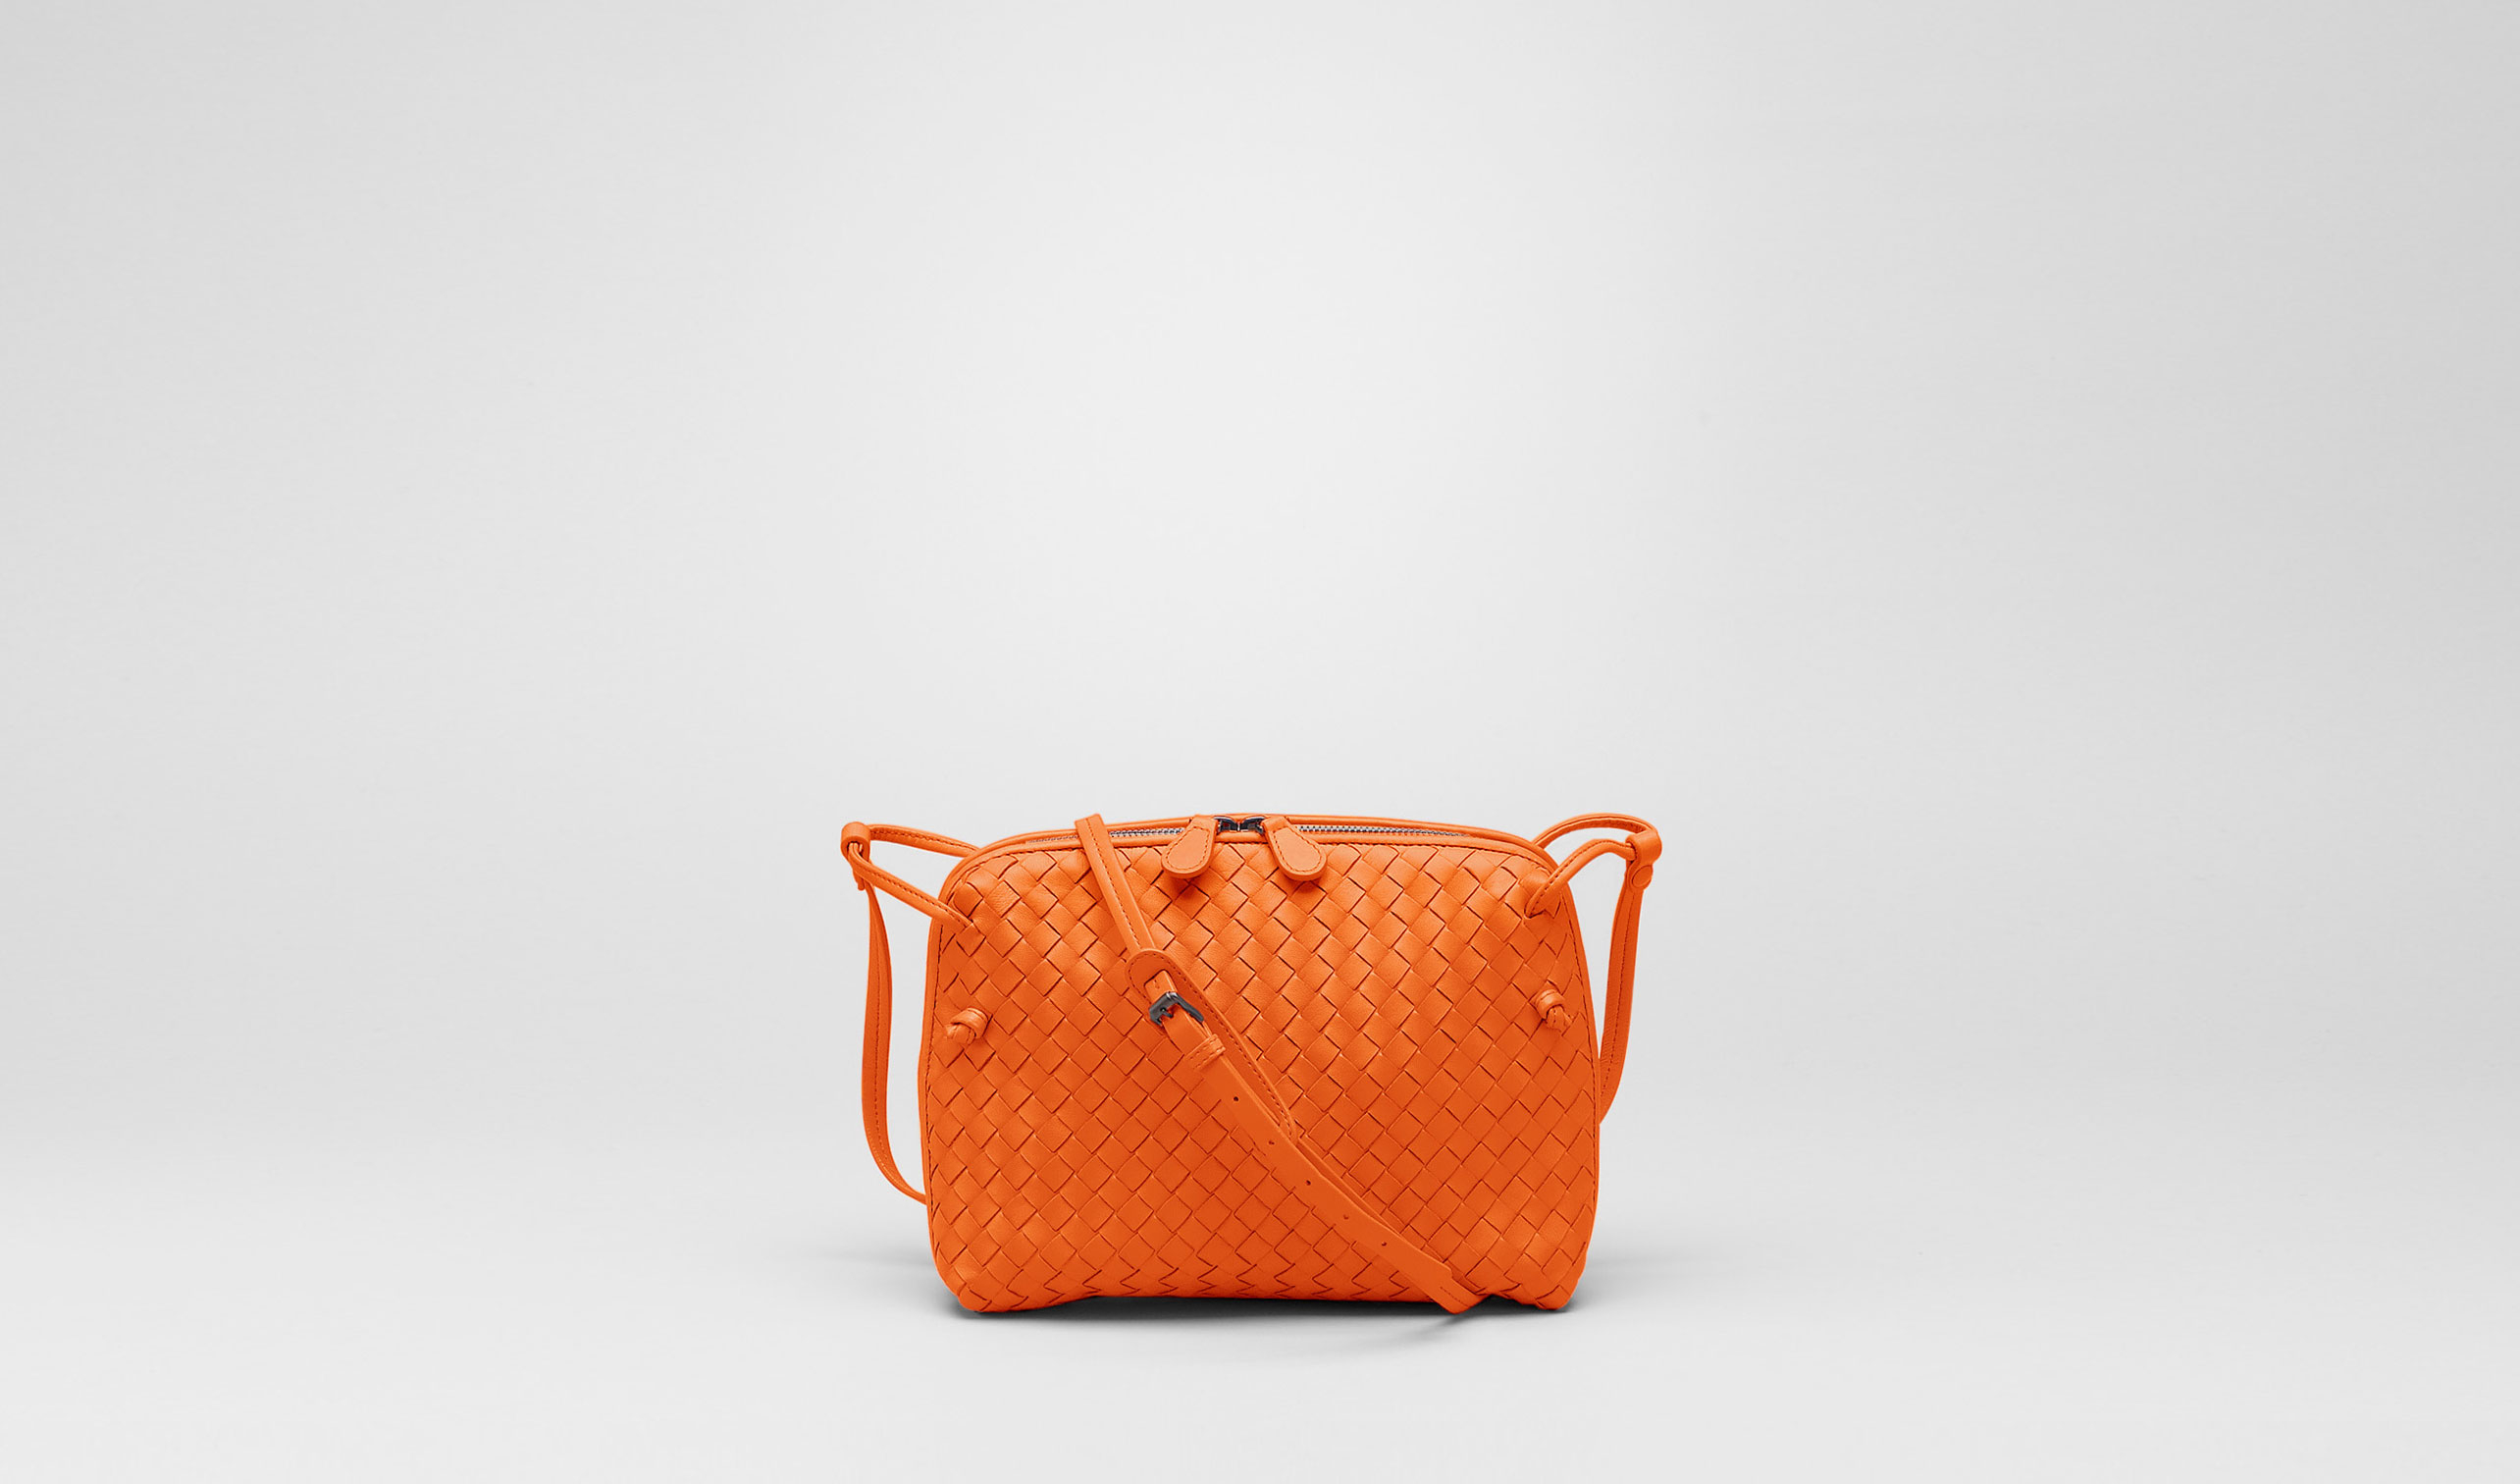 Bottega Veneta® | Tangerine Intrecciato Nappa Cross Body Bag | Crossbody bag | Bags